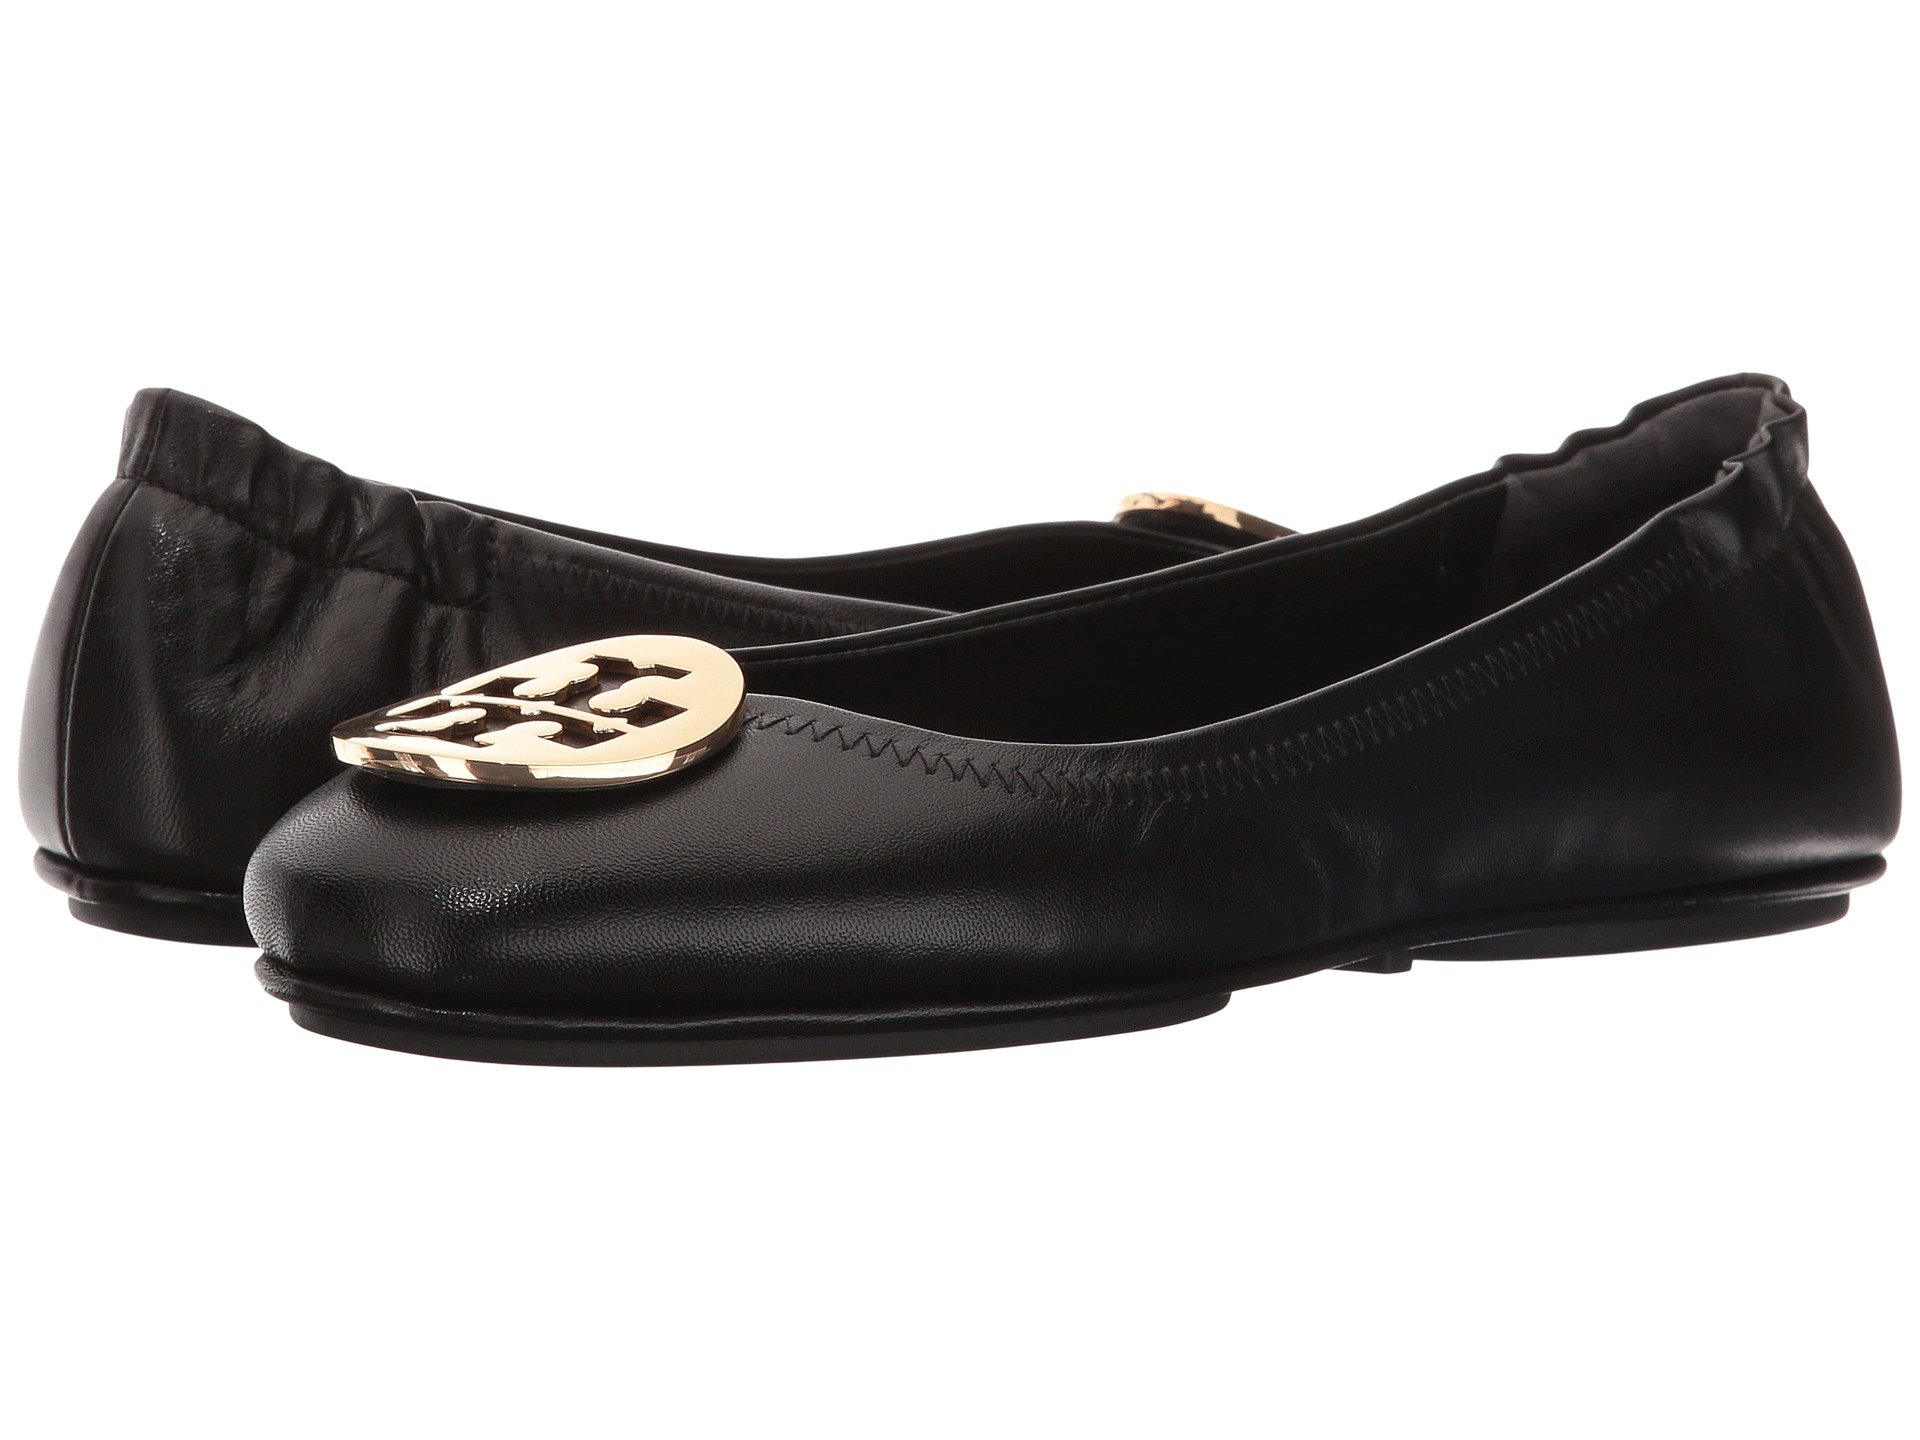 Tory Burch Minnie Travel Leather Ballet Flat - Size 7, Black/Gold